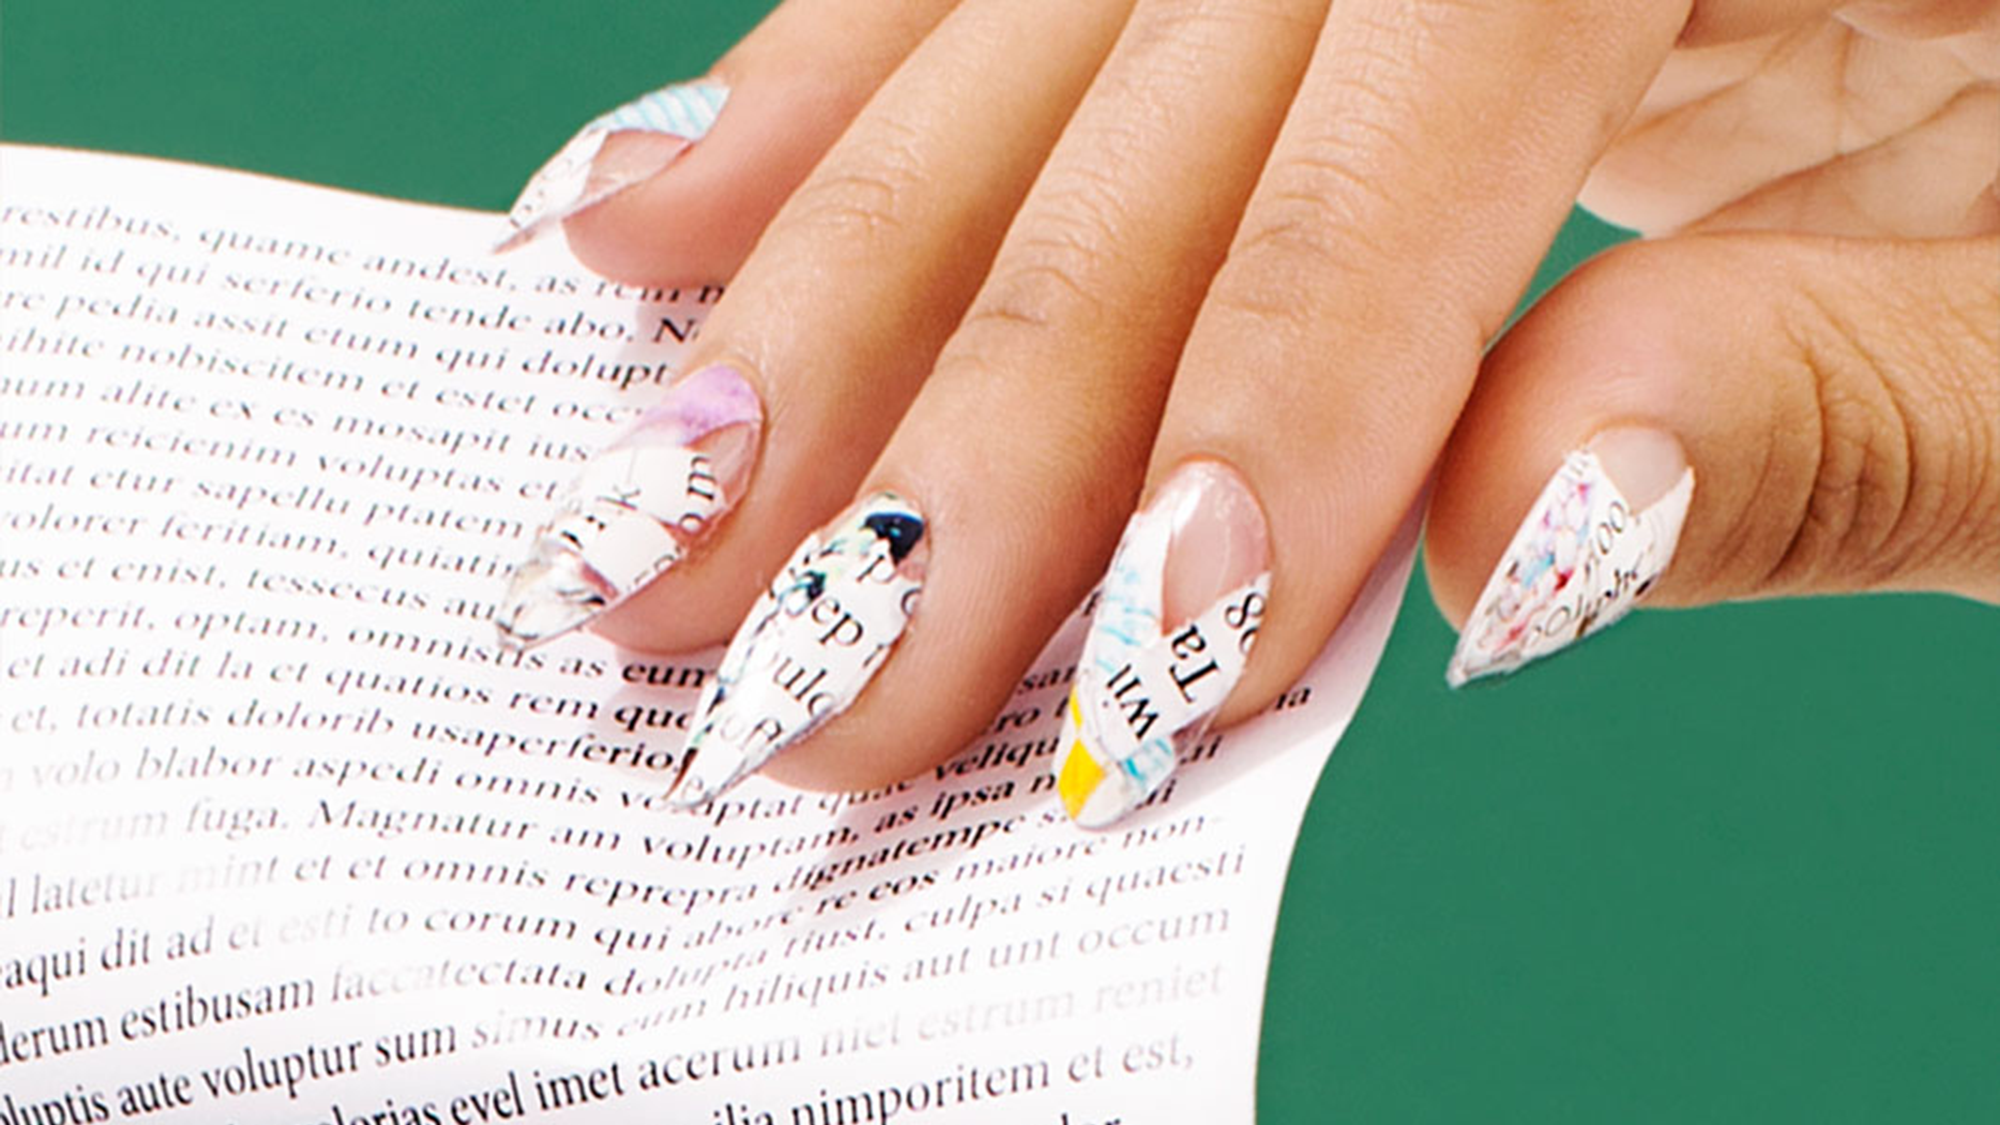 Crazy Nail Art - Weird Manicure Trends